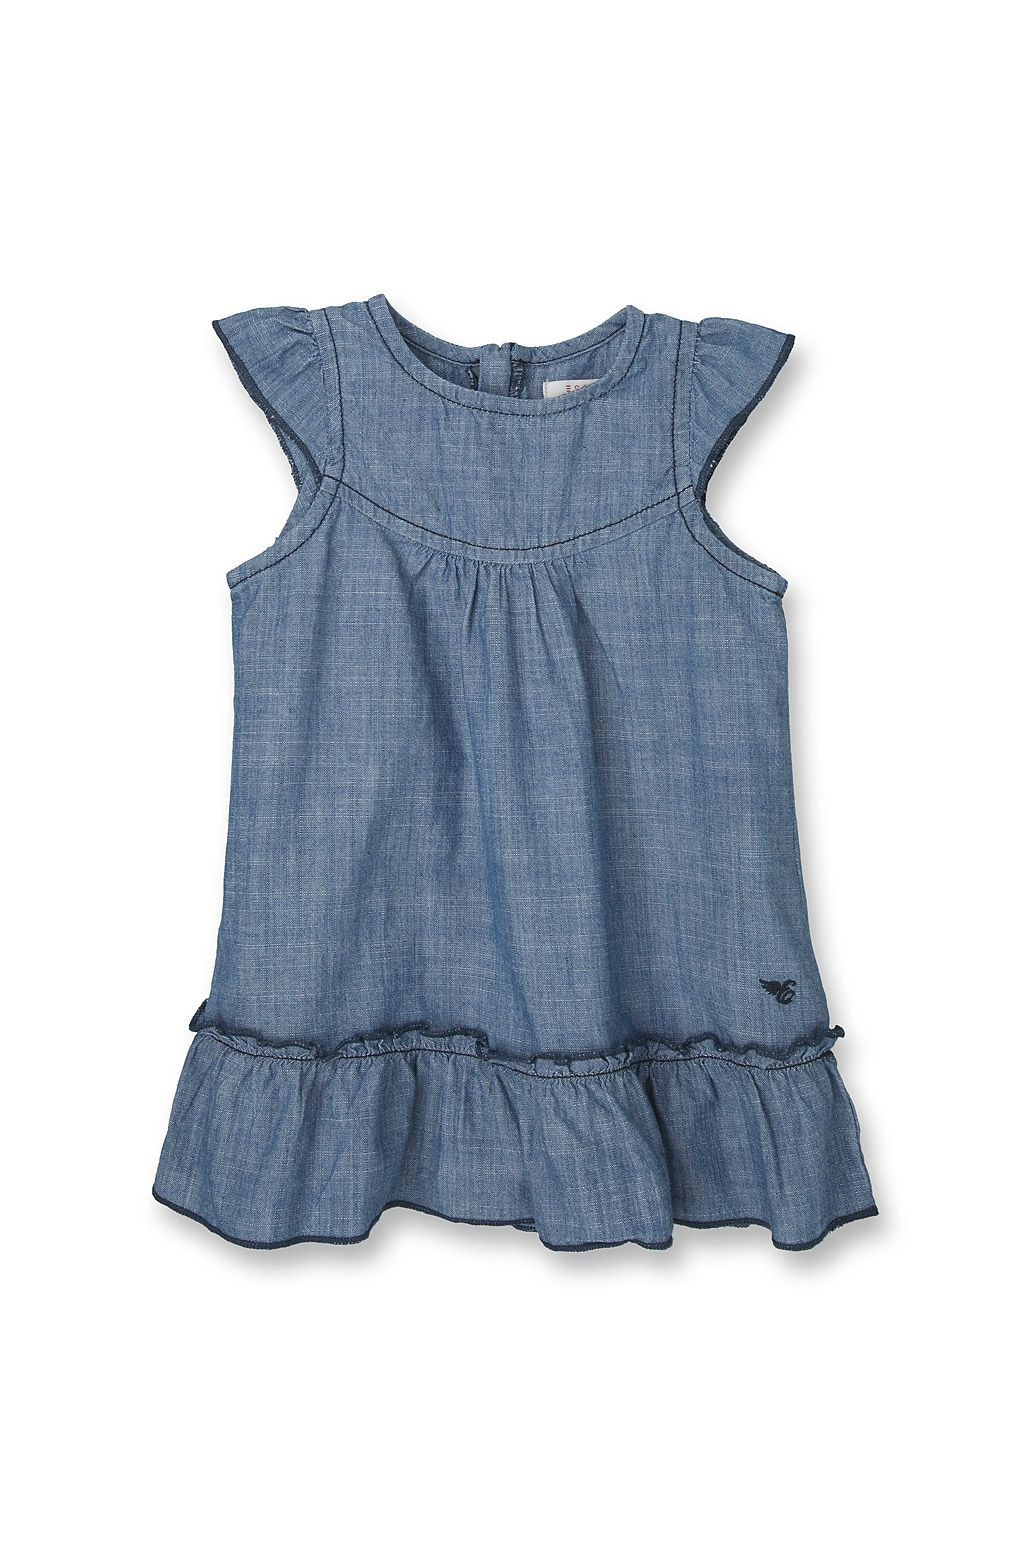 590772530a97 Esprit - Organic Cotton Jeanskleid im Online Shop kaufen Baby Girls,  Hadley, Organic Cotton